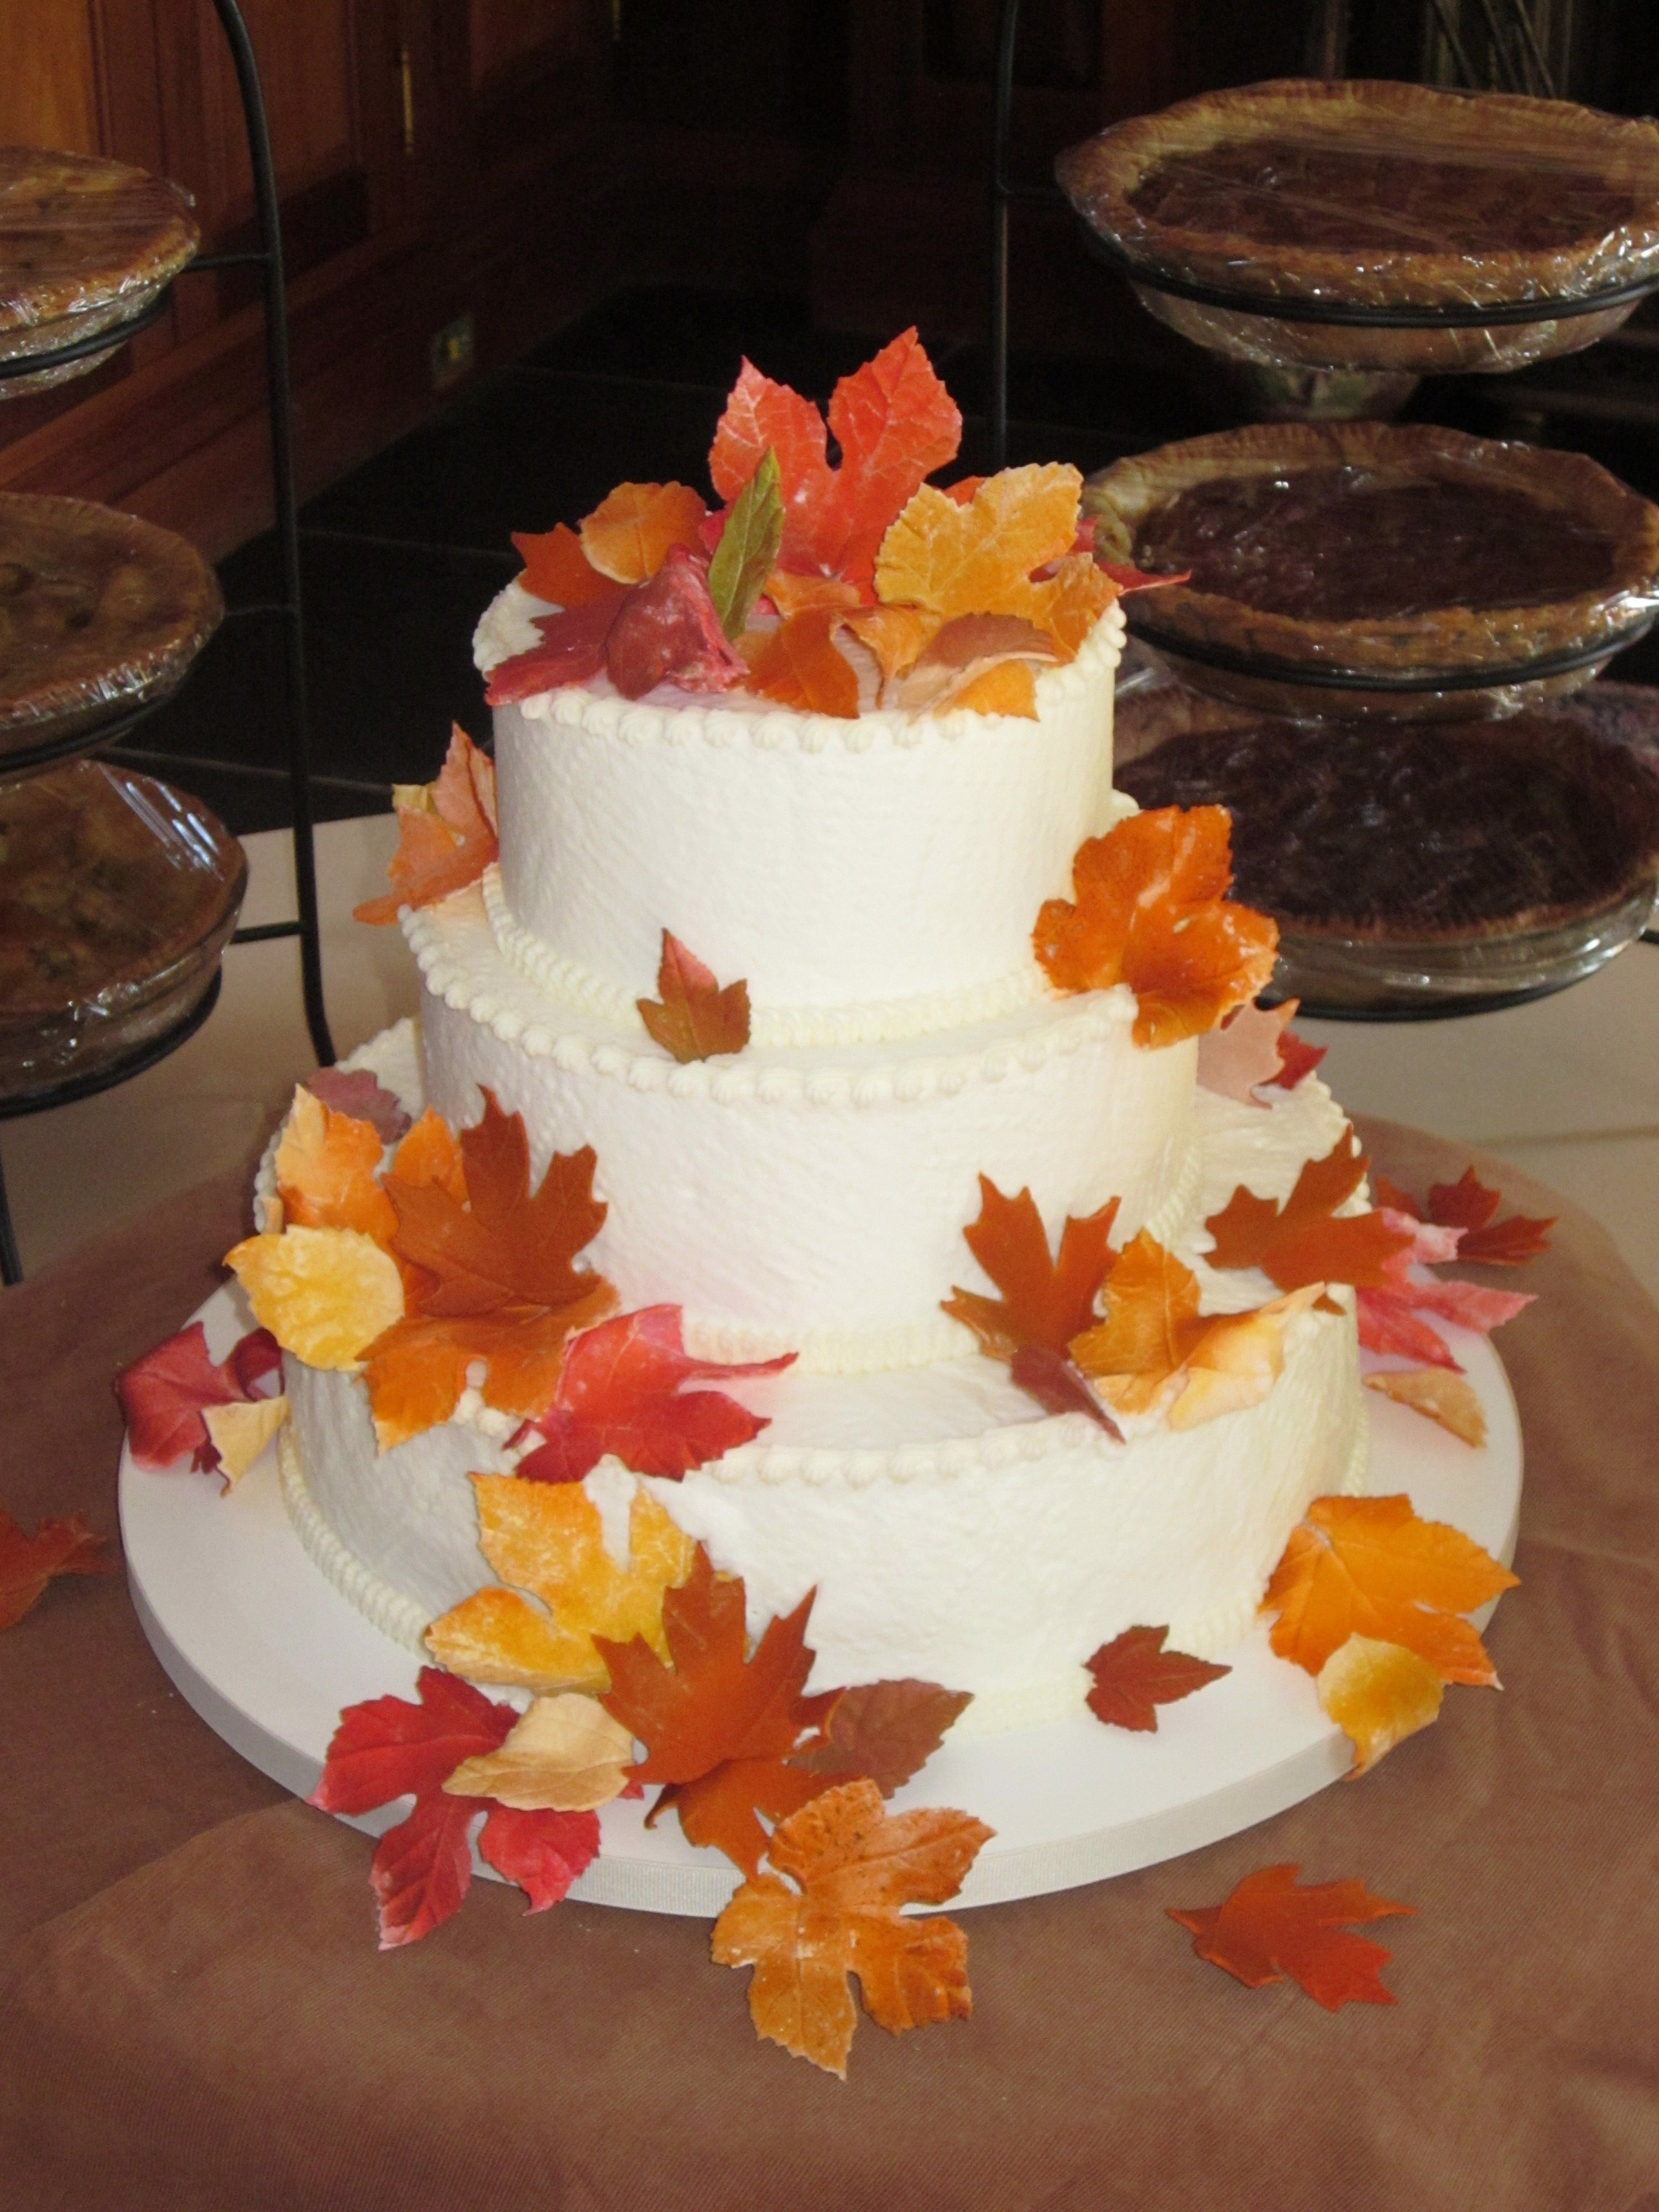 Fondant Fall Leaves Adorn This Simple Wedding Cake In